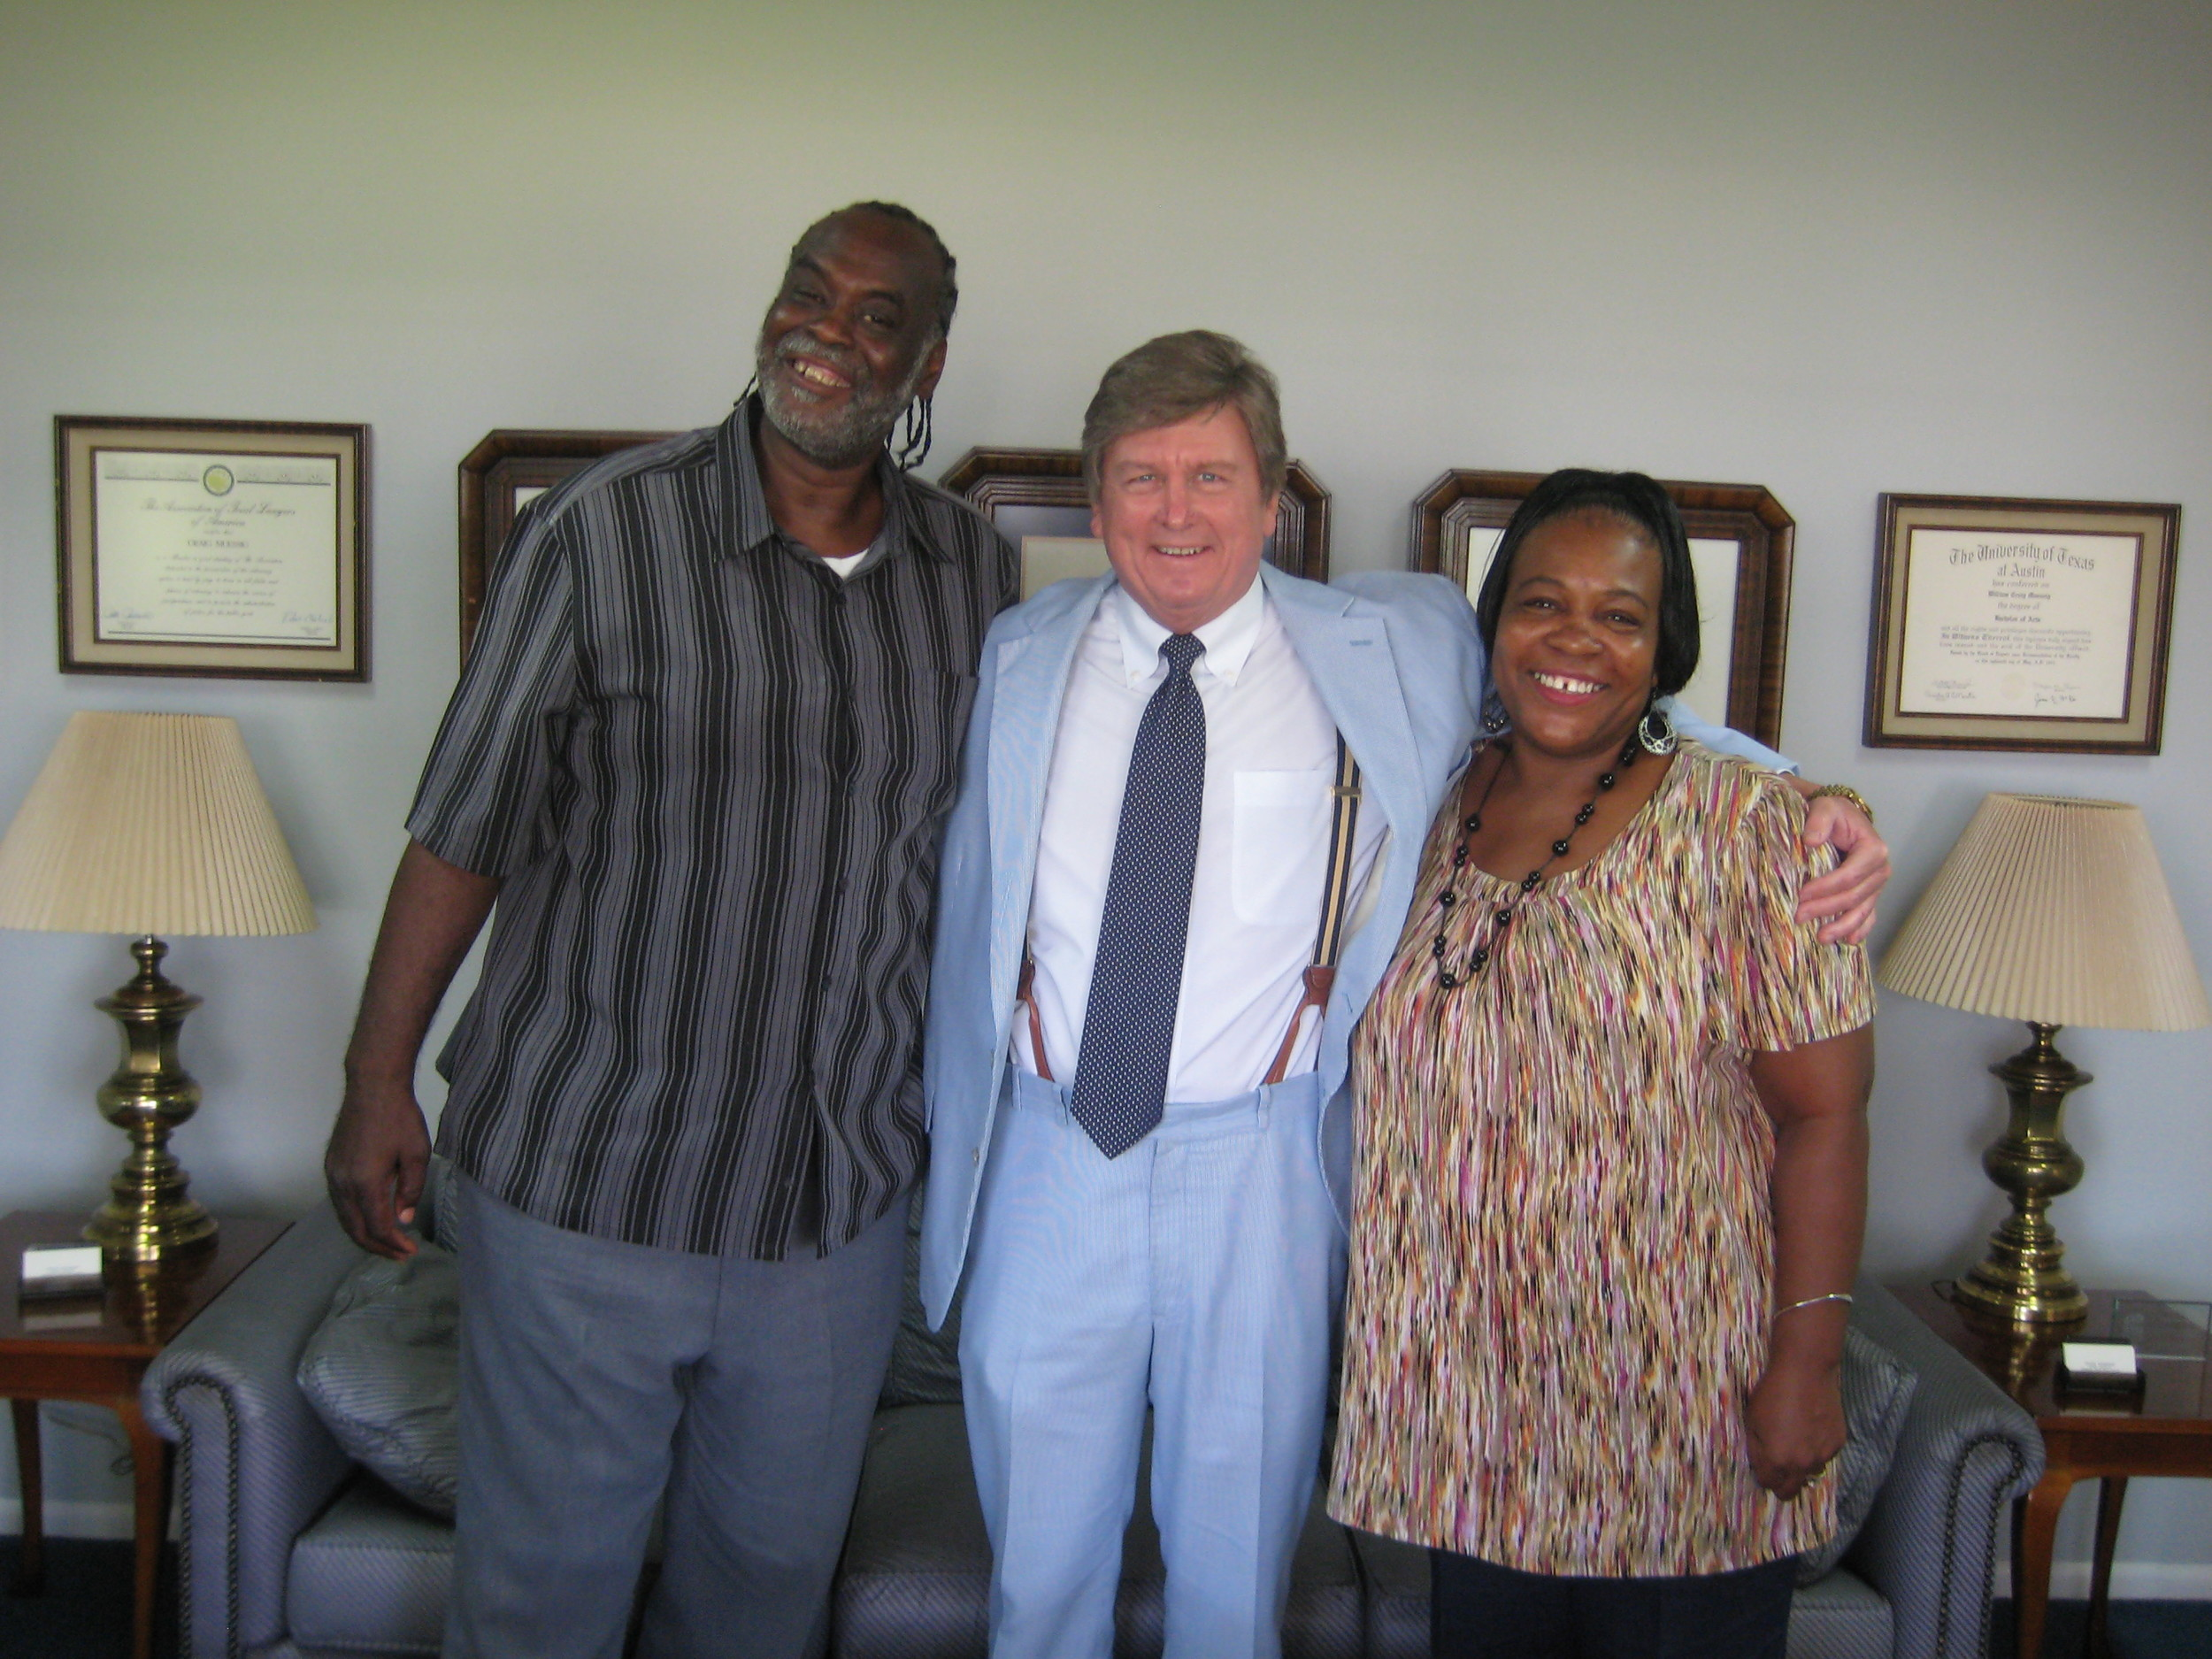 After a long battle with two major insurance companies, Muessig is pictured celebrating a $500,000 settlement with his client Bobby Robinson and his wife Andrea. Robinson was injured in a Katy auto accident and underwent successful neck surgery.